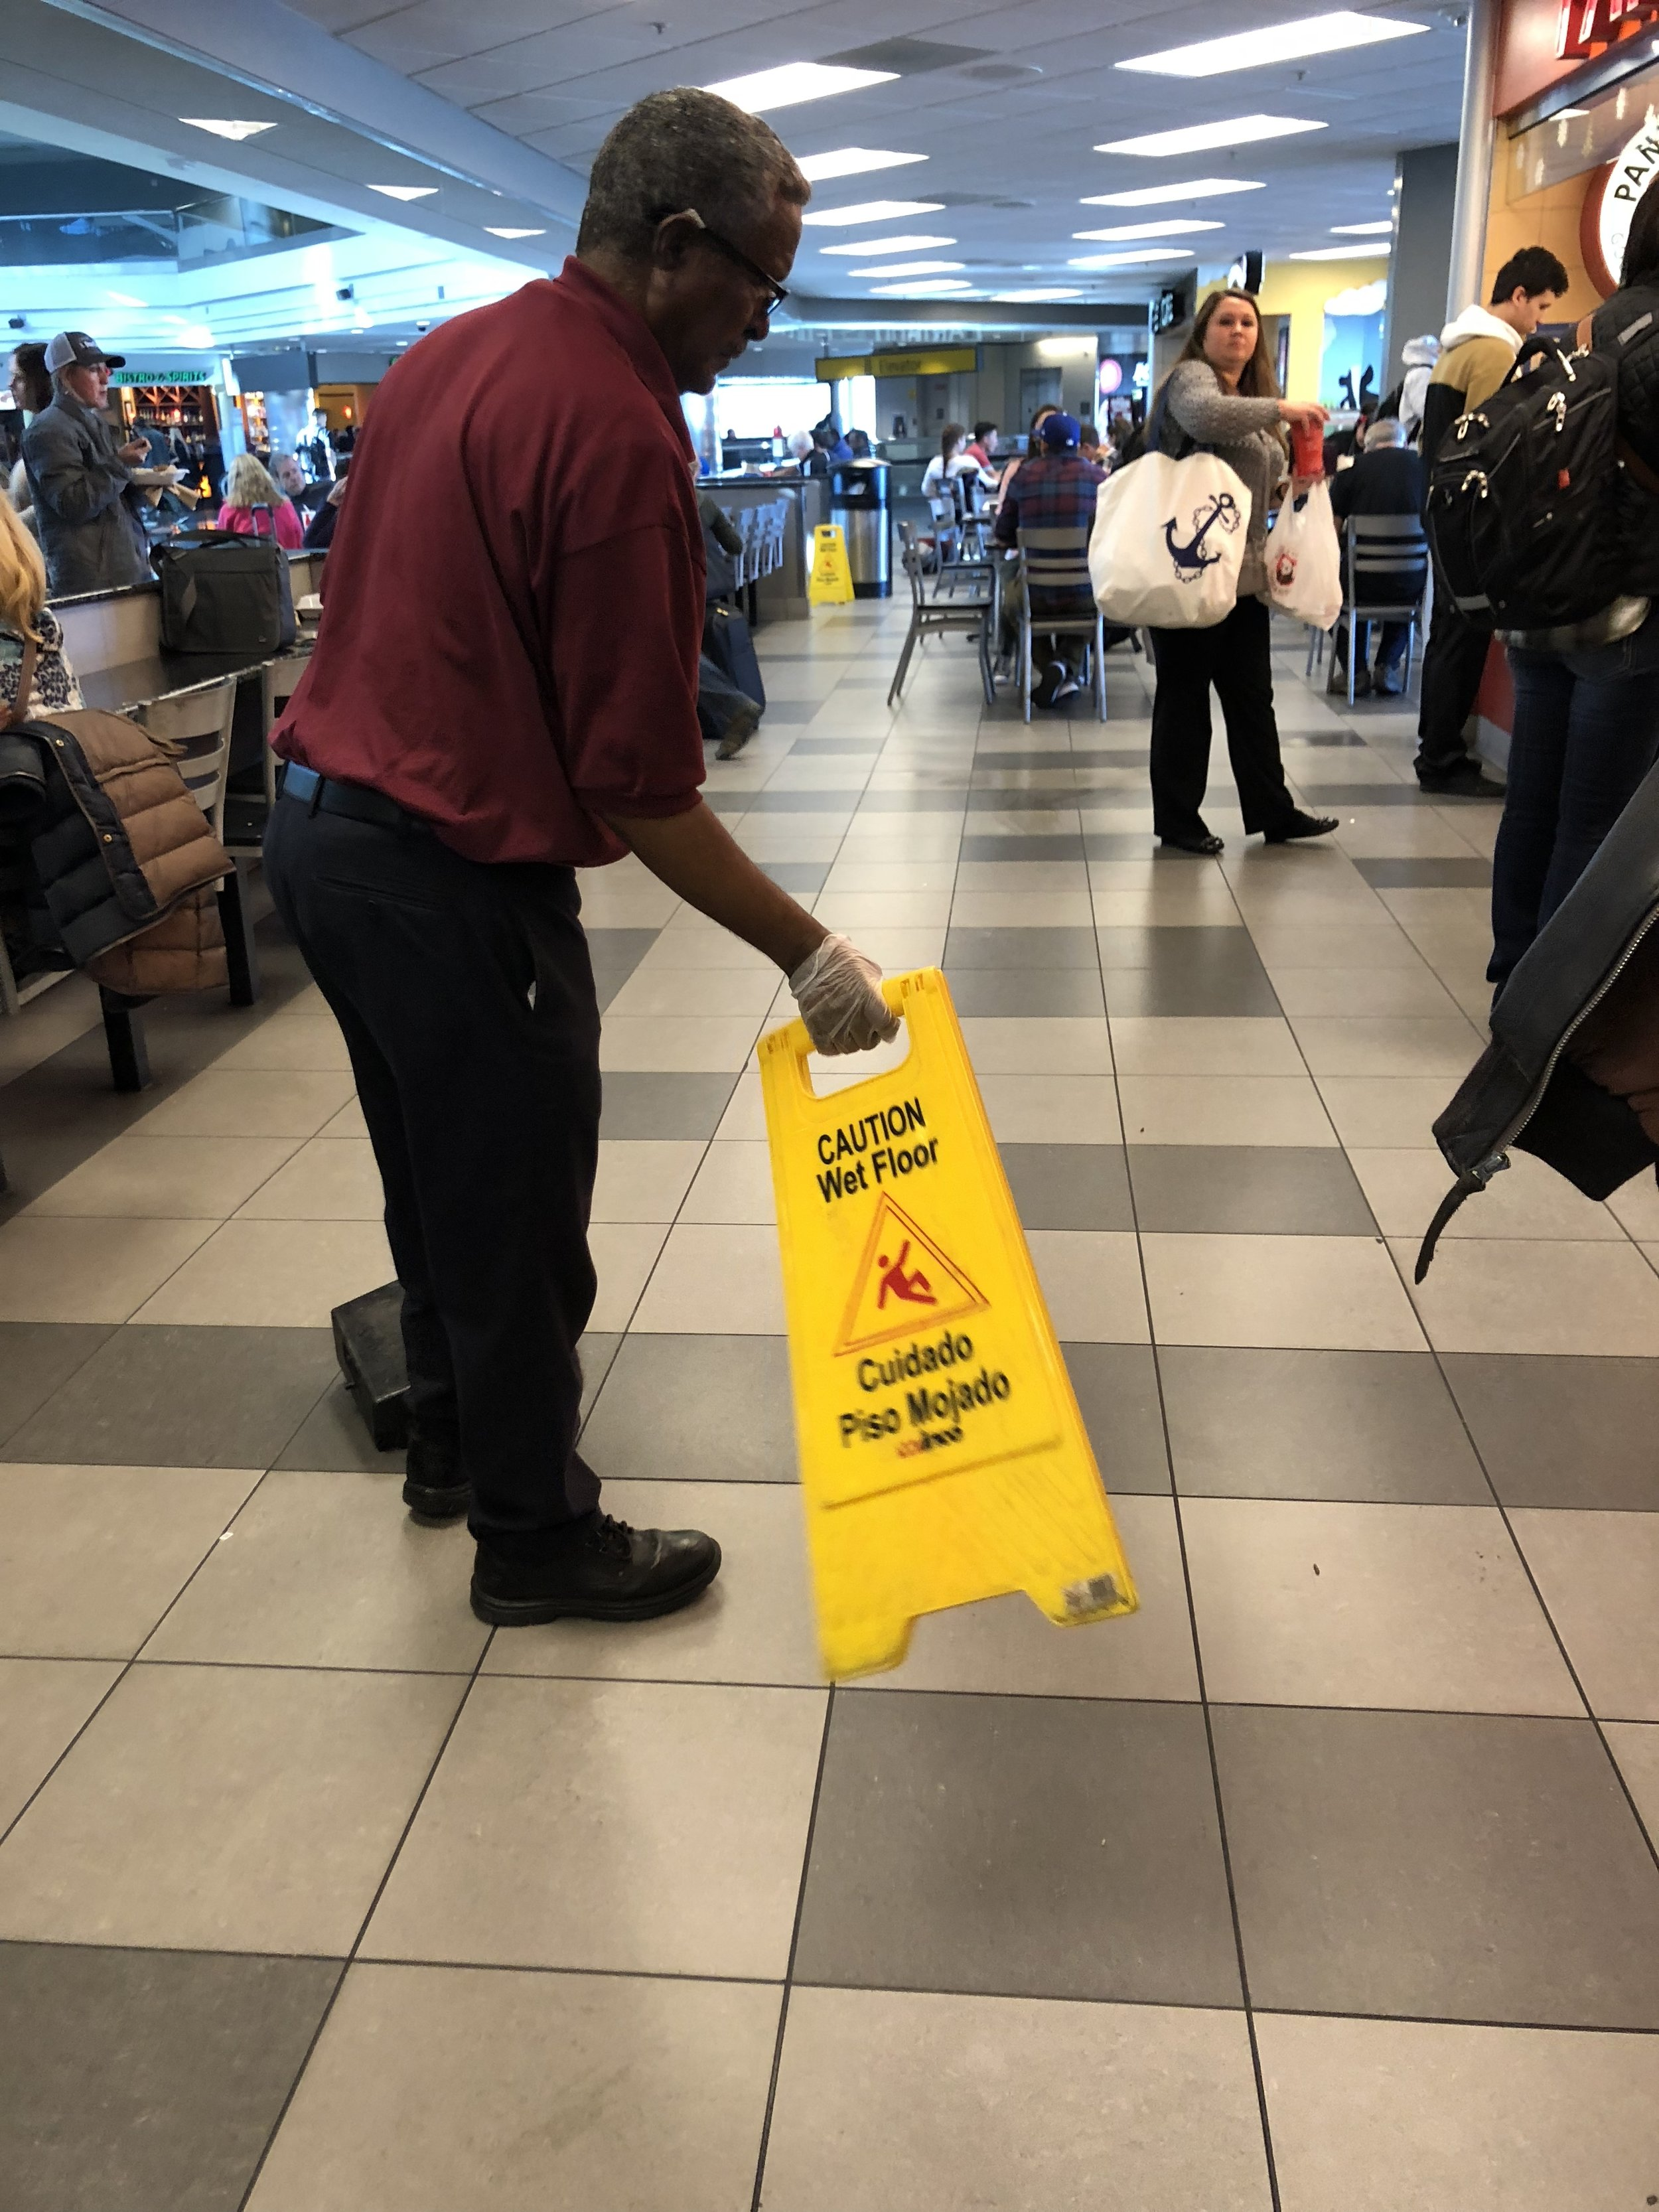 I saw this guy at the airport yesterday, waving the Wet Floor sign to dry the floor – I think these markers have reached their day.